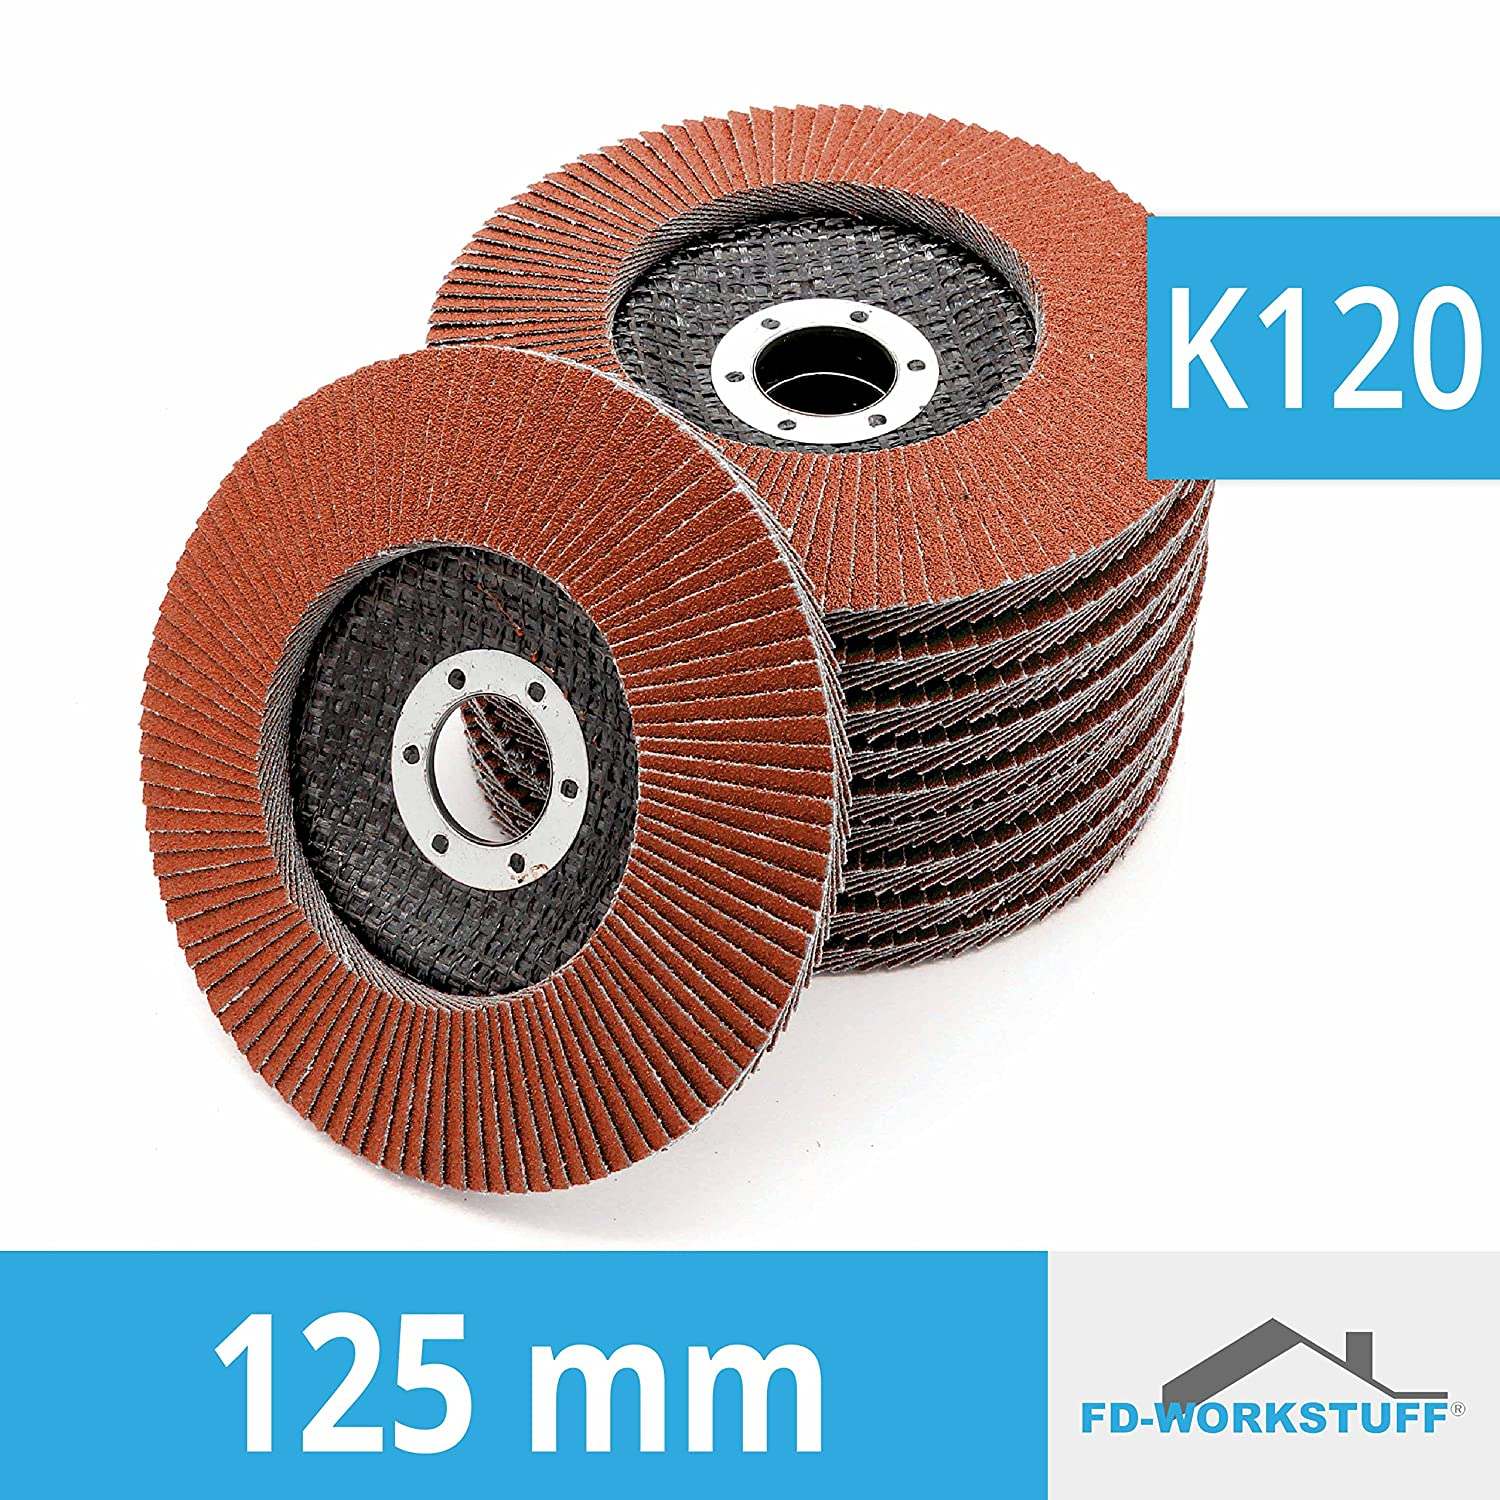 Brown Abrasive Mop Discs 120/ Grit Flap Discs 125/ mm Pack of 10/ Serrated Washers